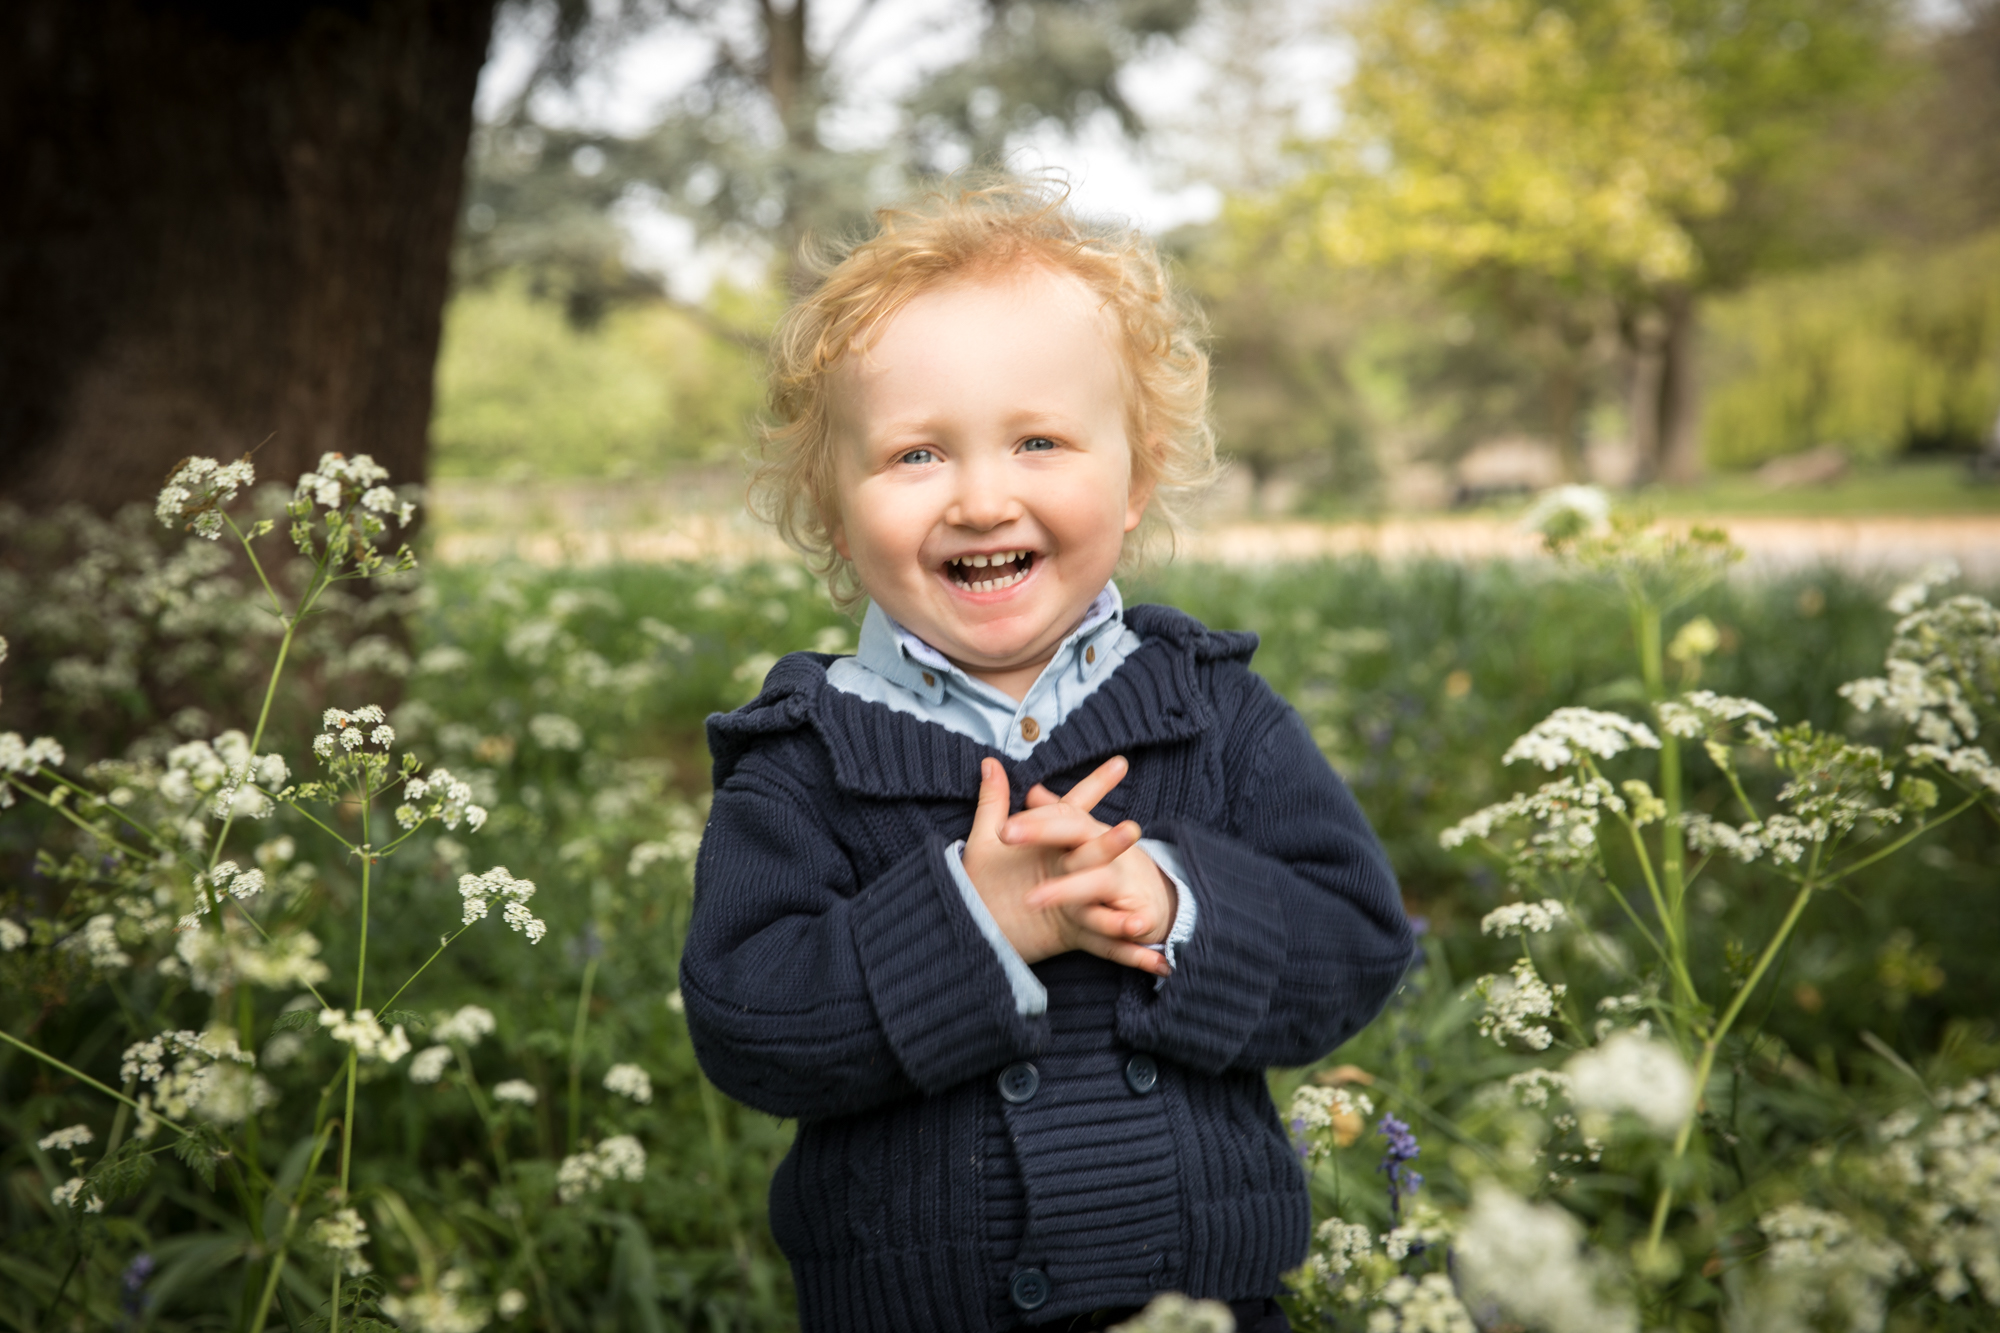 Children photography at Dulwich Park, London